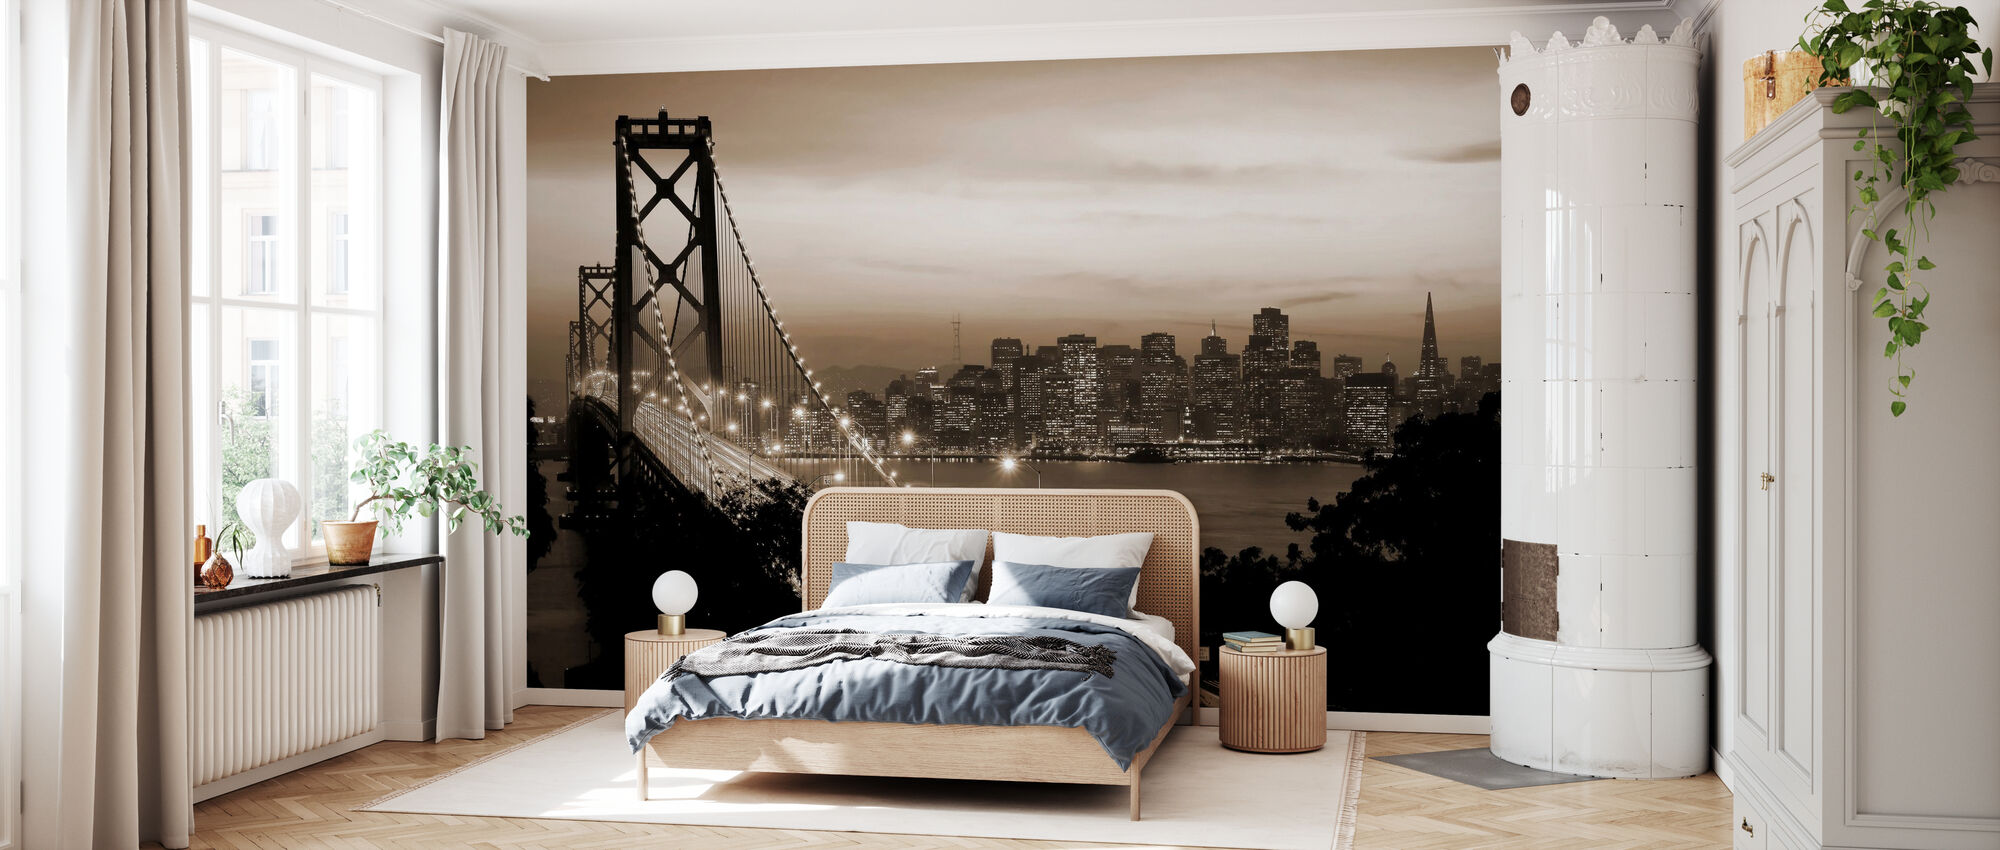 San Francisco, California, USA - Wallpaper - Bedroom